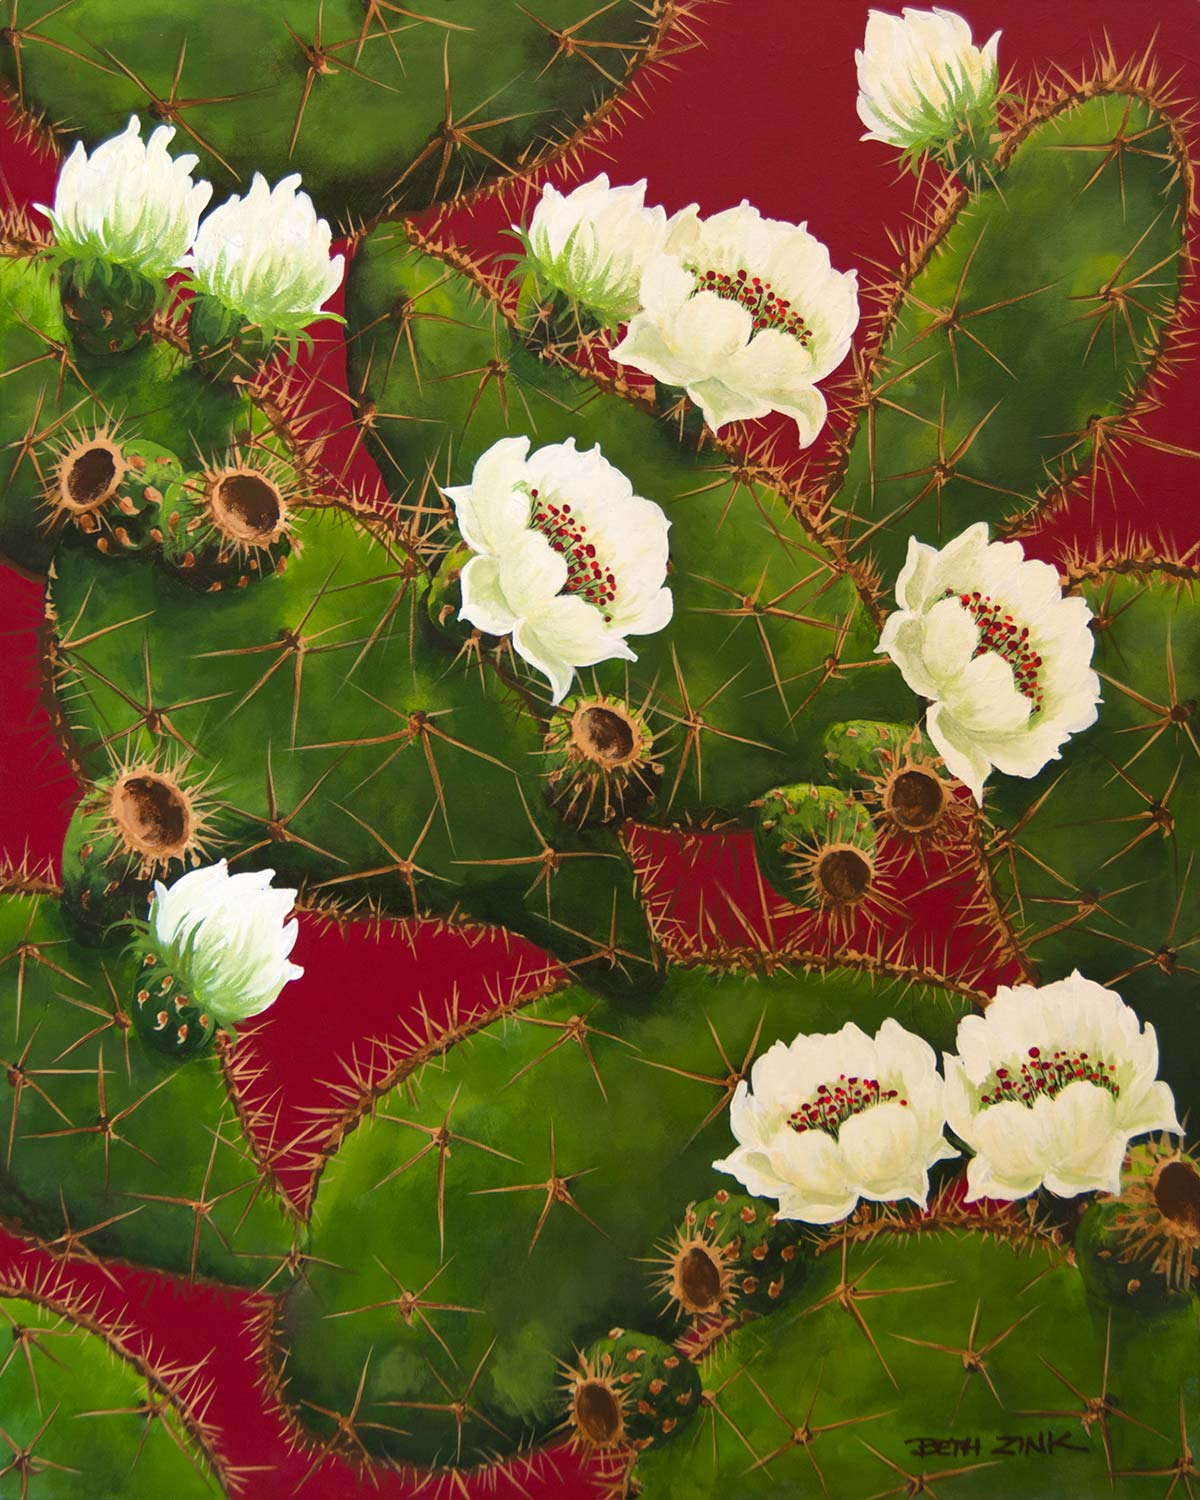 beth zink painting prickly pear cactus blooming white flowers